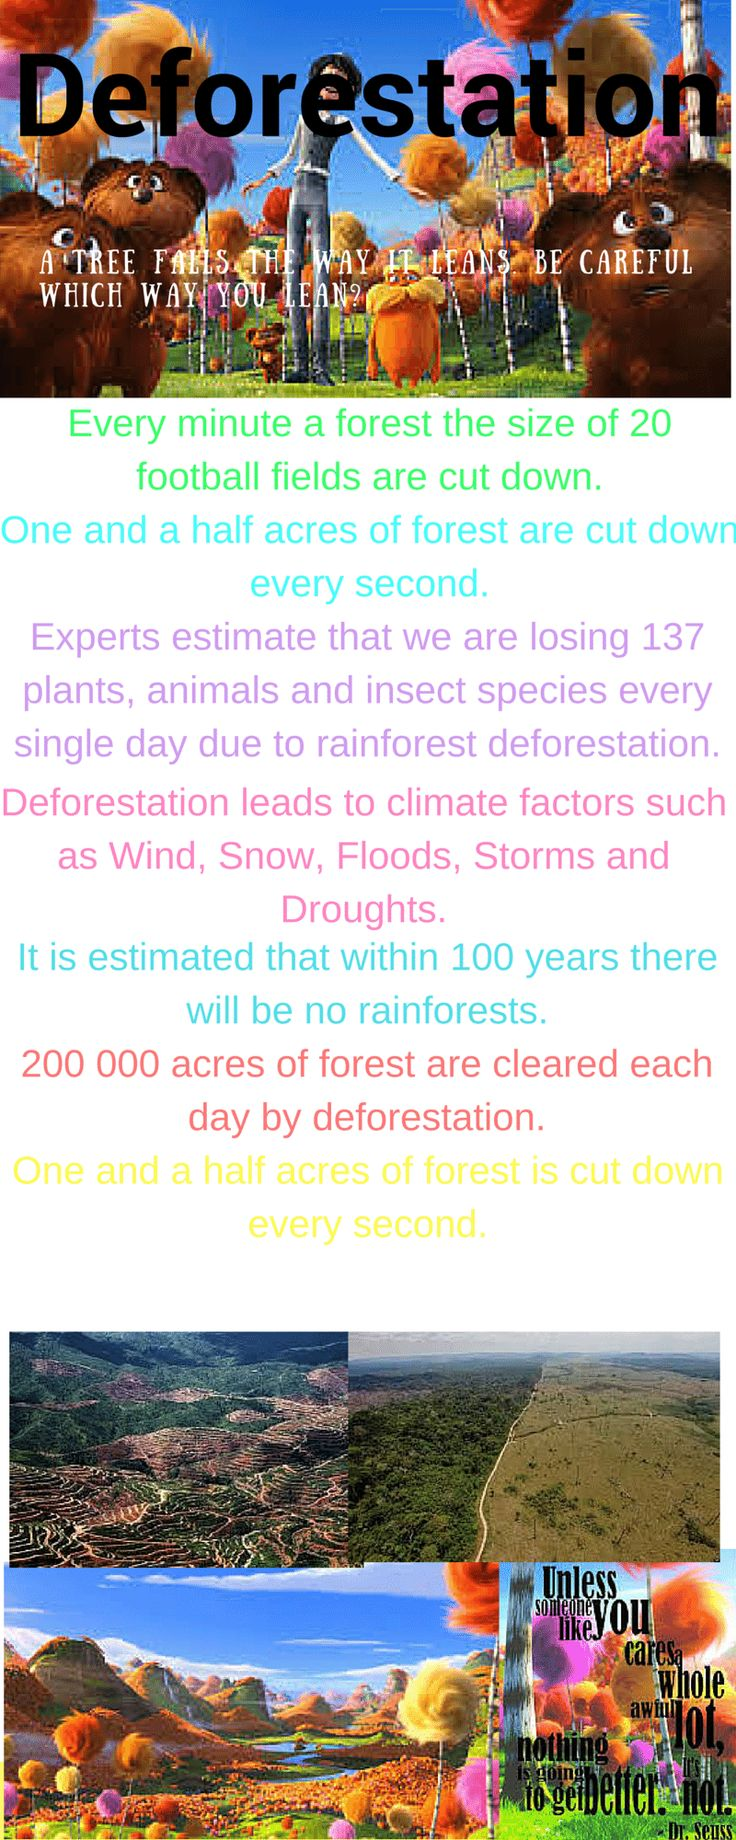 Deforestation a tree falls the way it leans. be careful which way y...